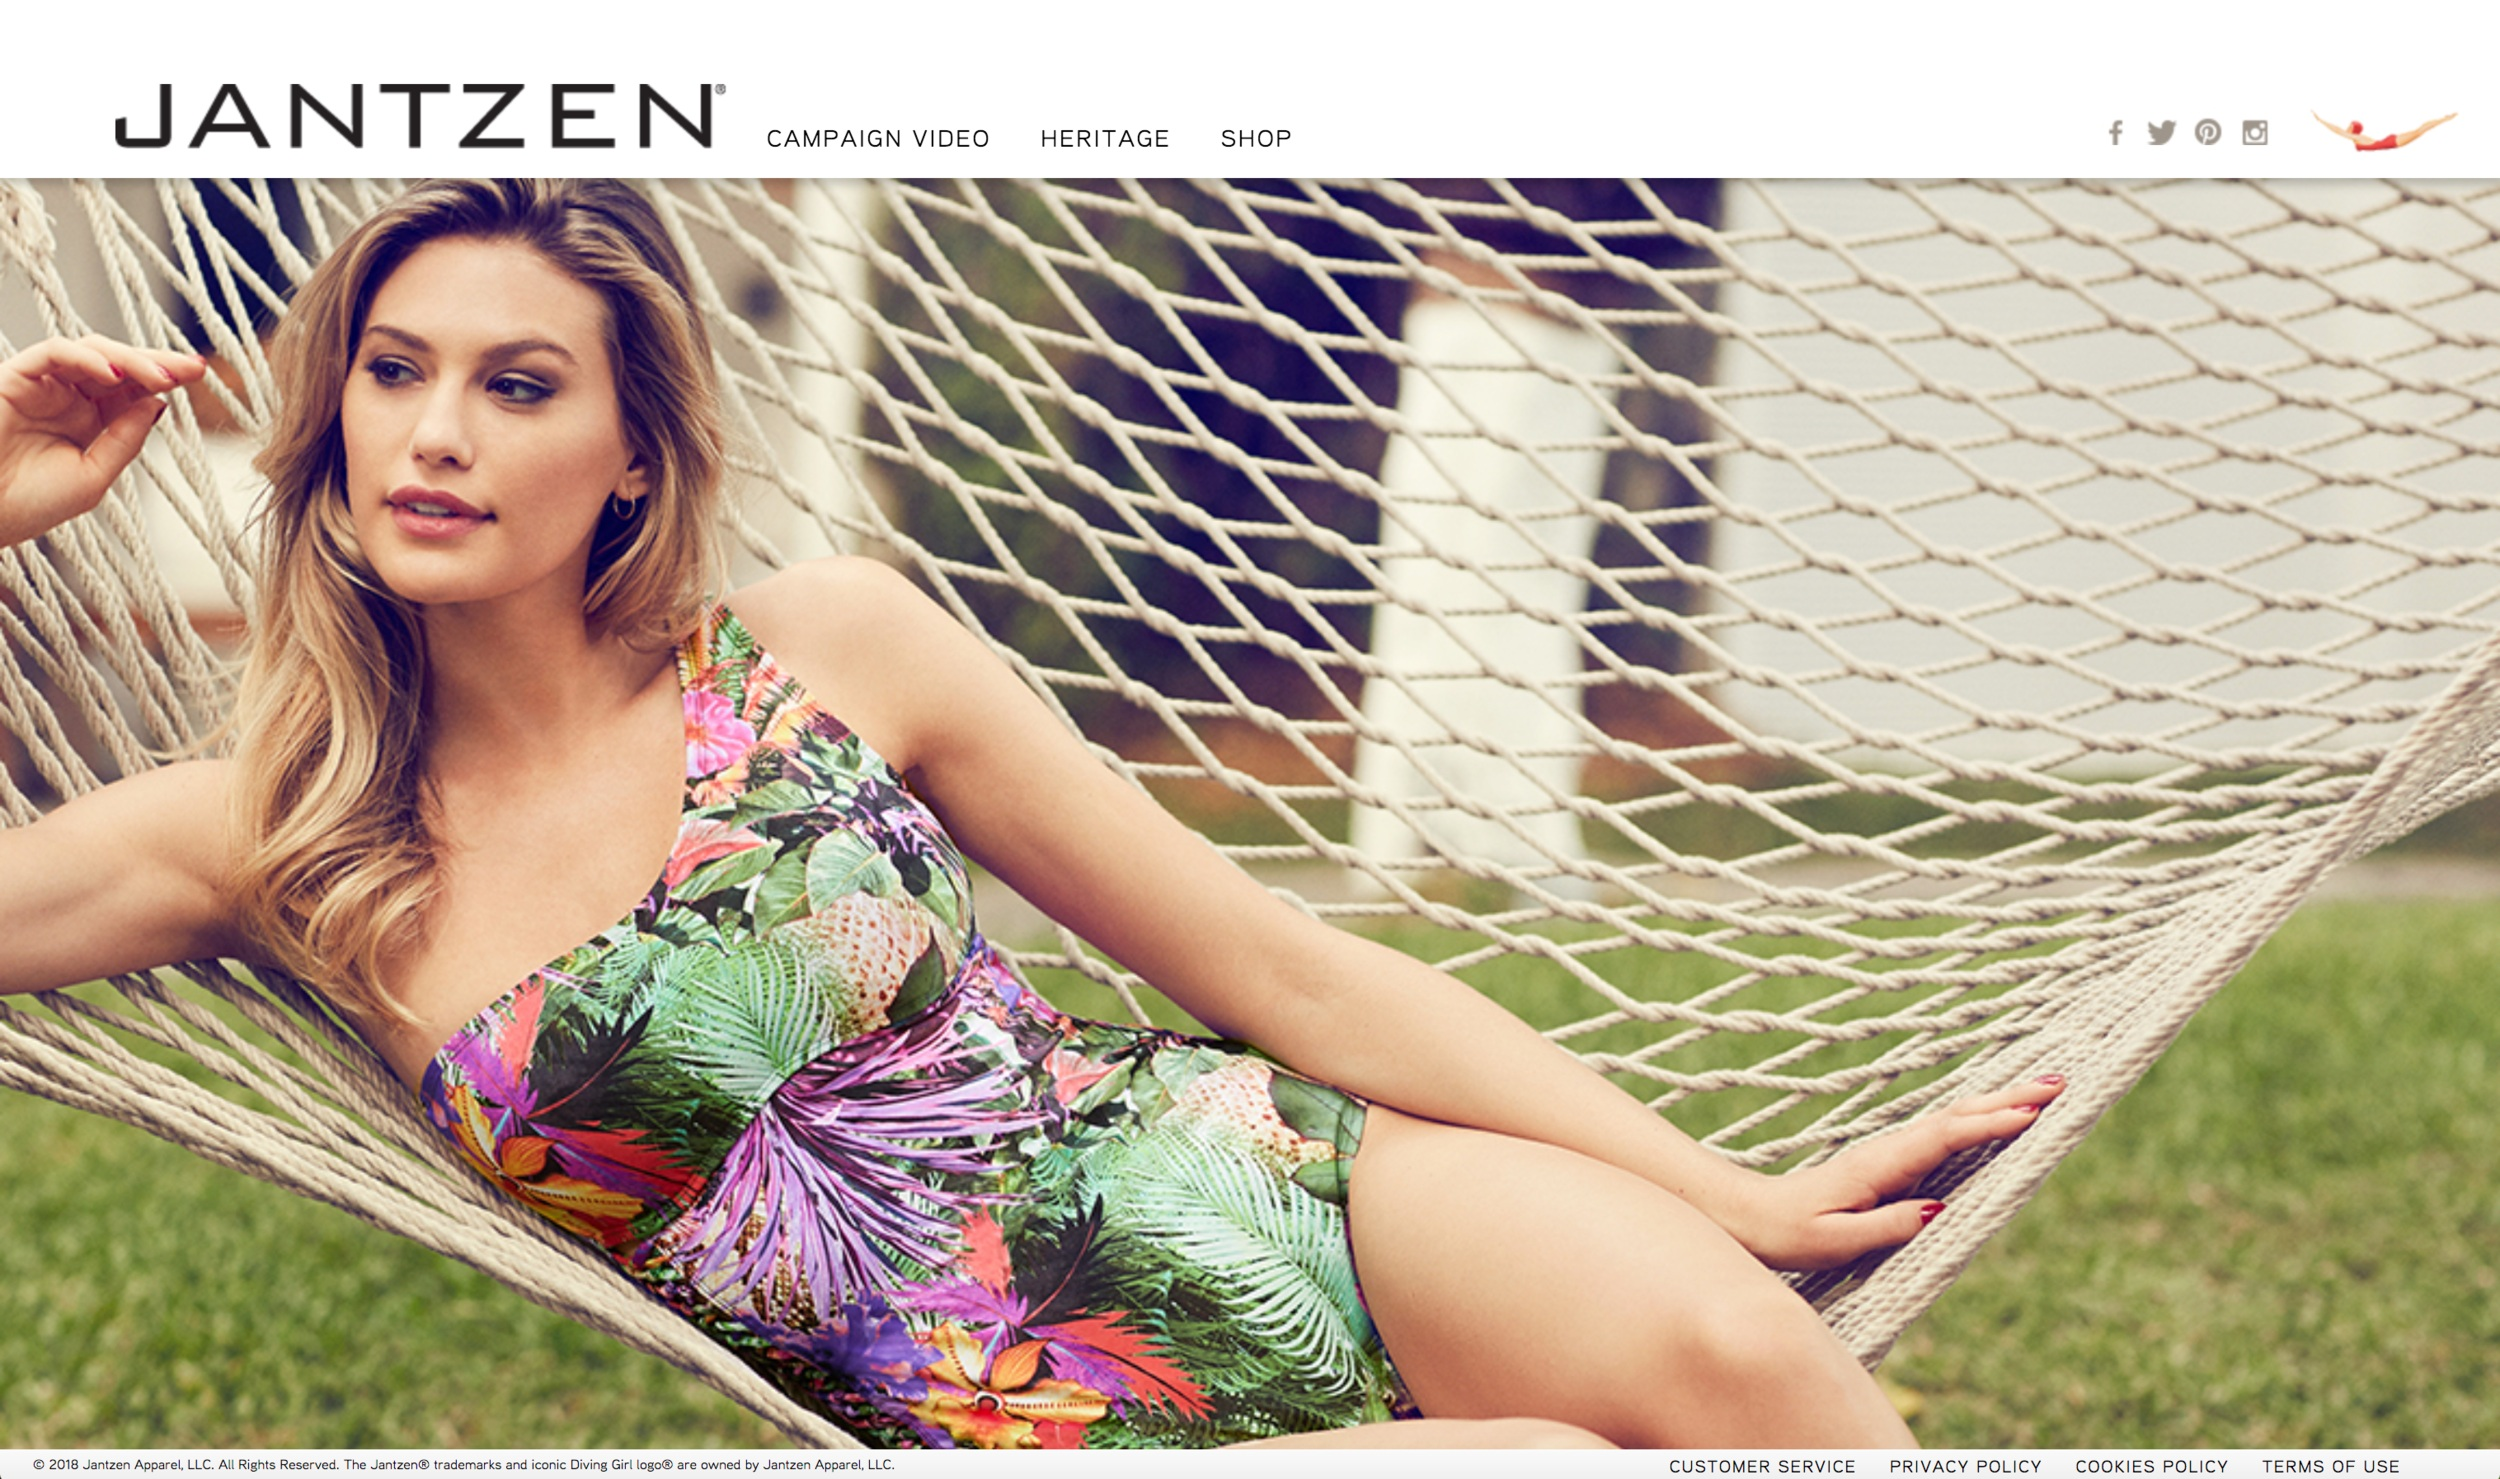 Jantzen Website   When Perry Ellis International took over Jantzen's web presence, everything had to undergo a polish and refresh. From look and feel to UX and dev, I managed this transition. The site is still working off the original build more than a decade later.